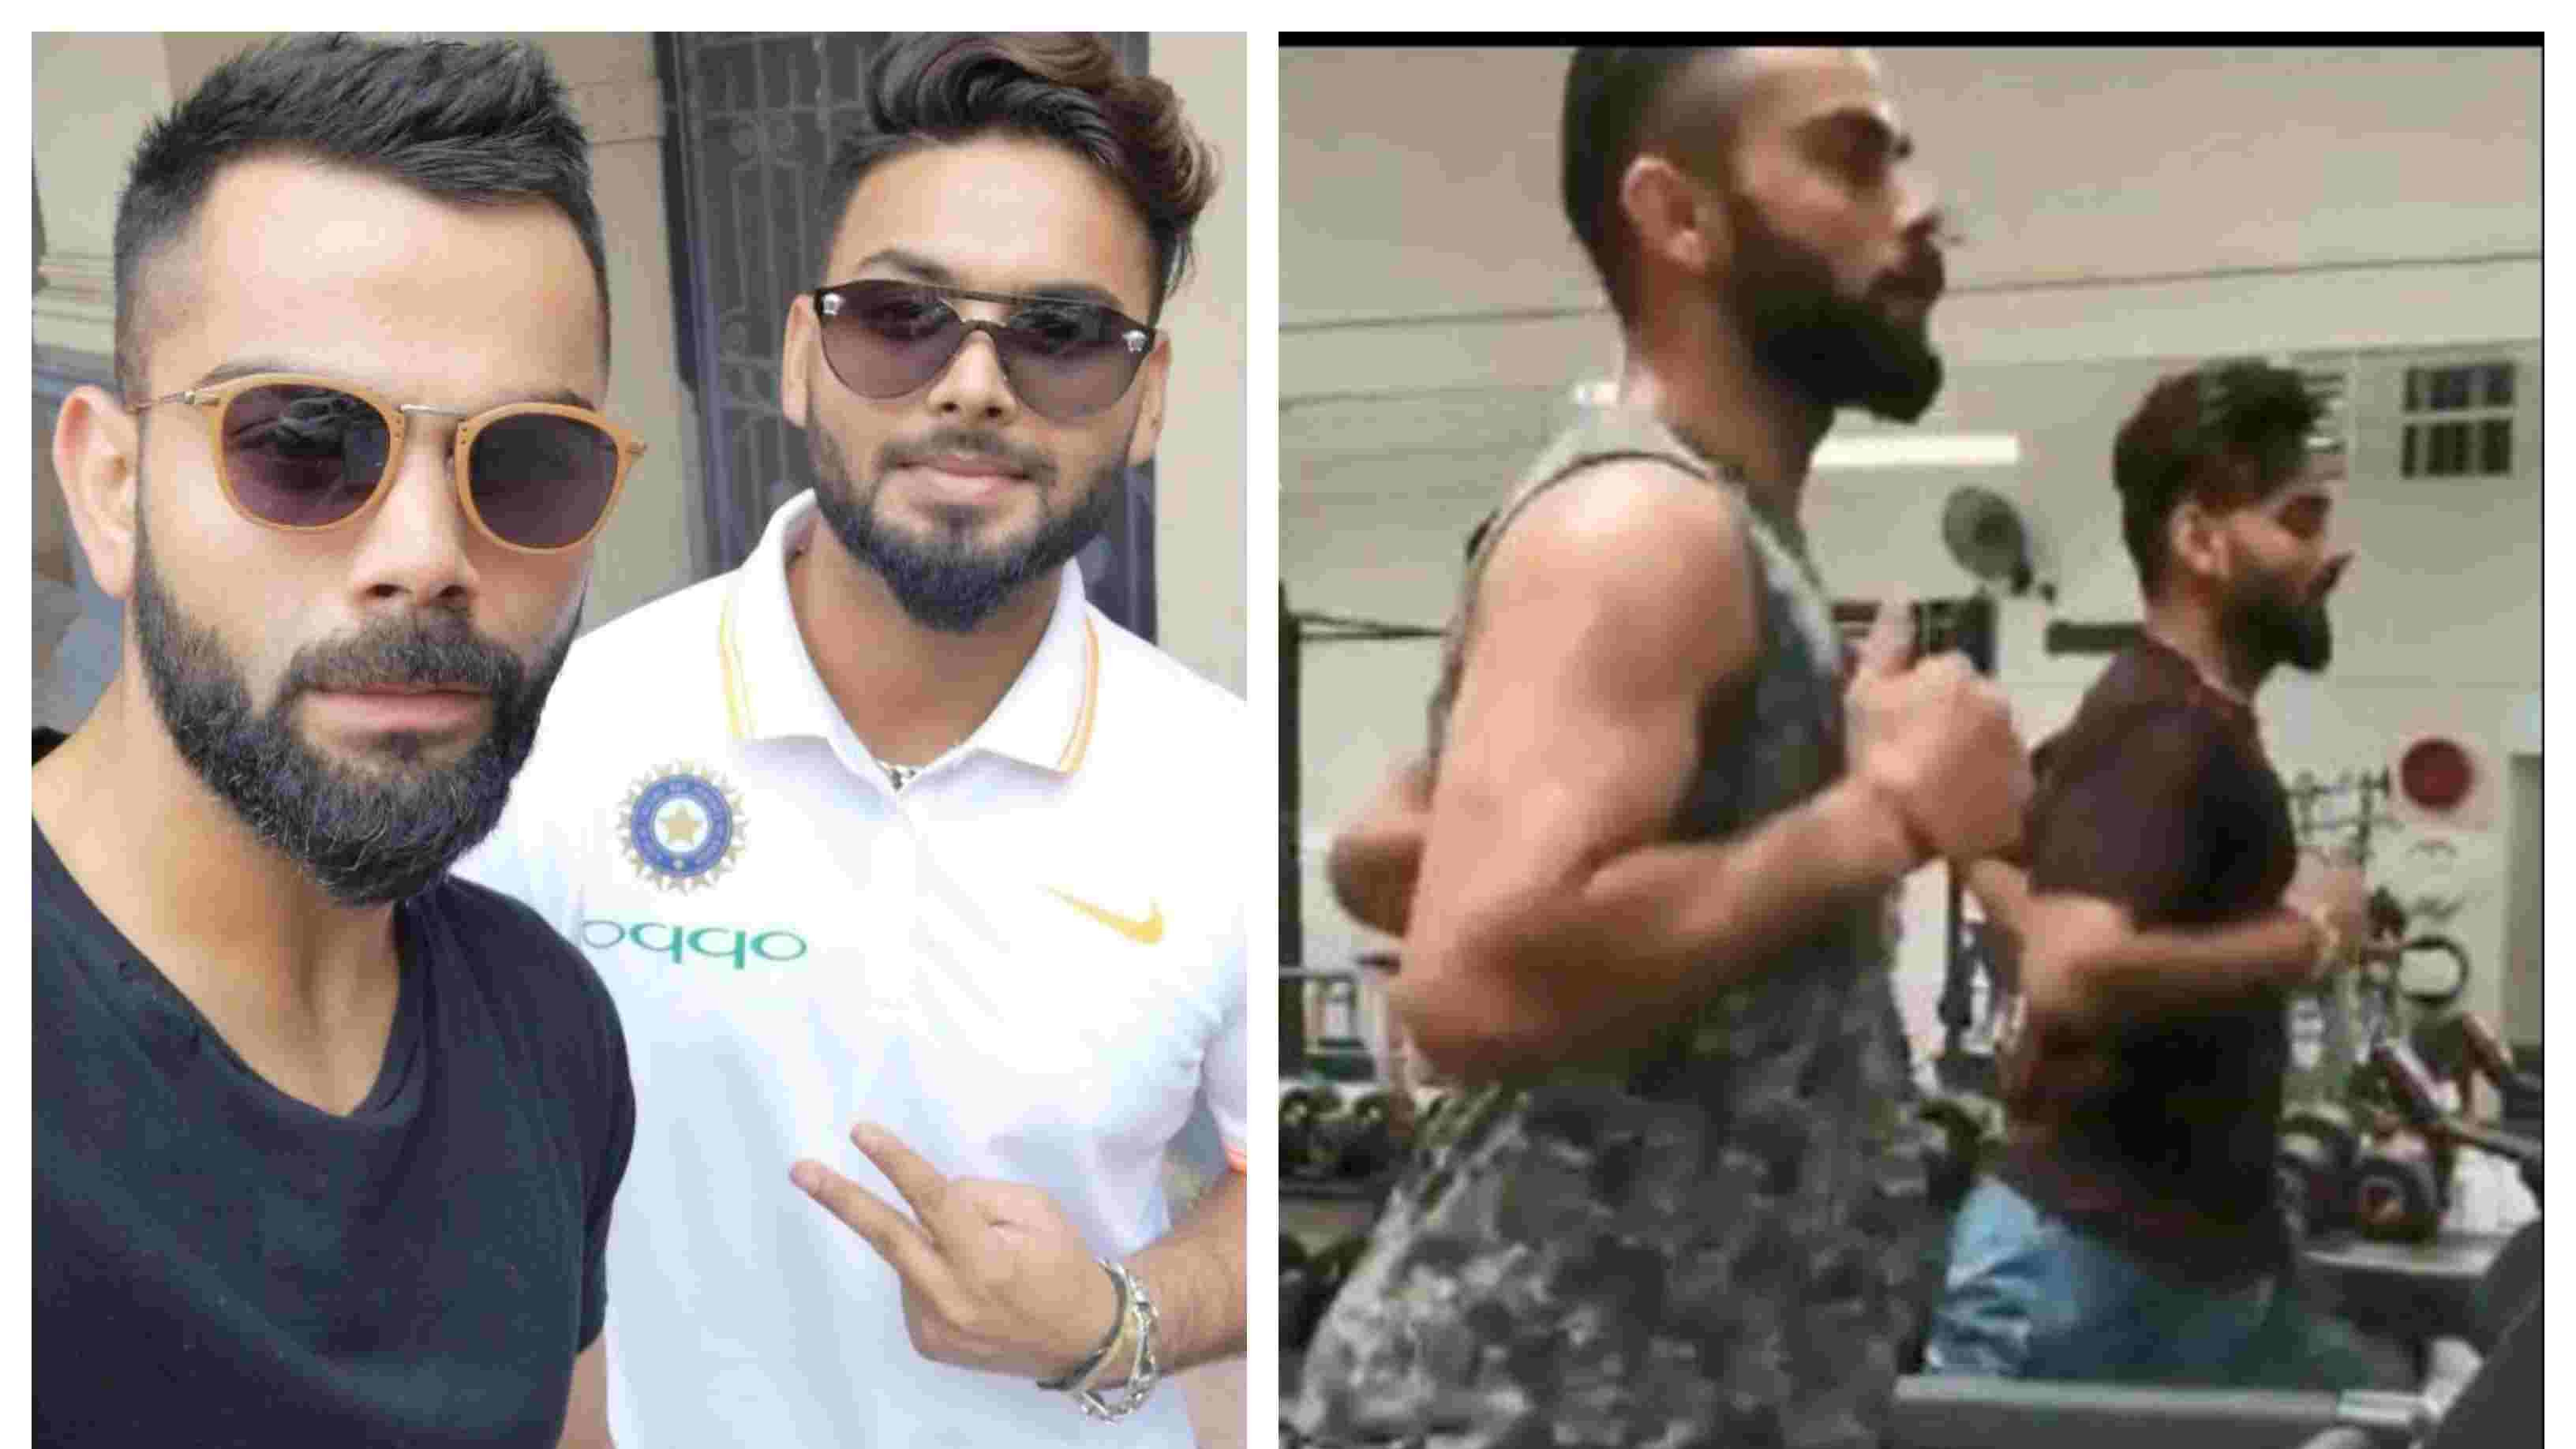 AUS v IND 2018-19: WATCH – Virat Kohli trains with Rishabh Pant after landing in Australia